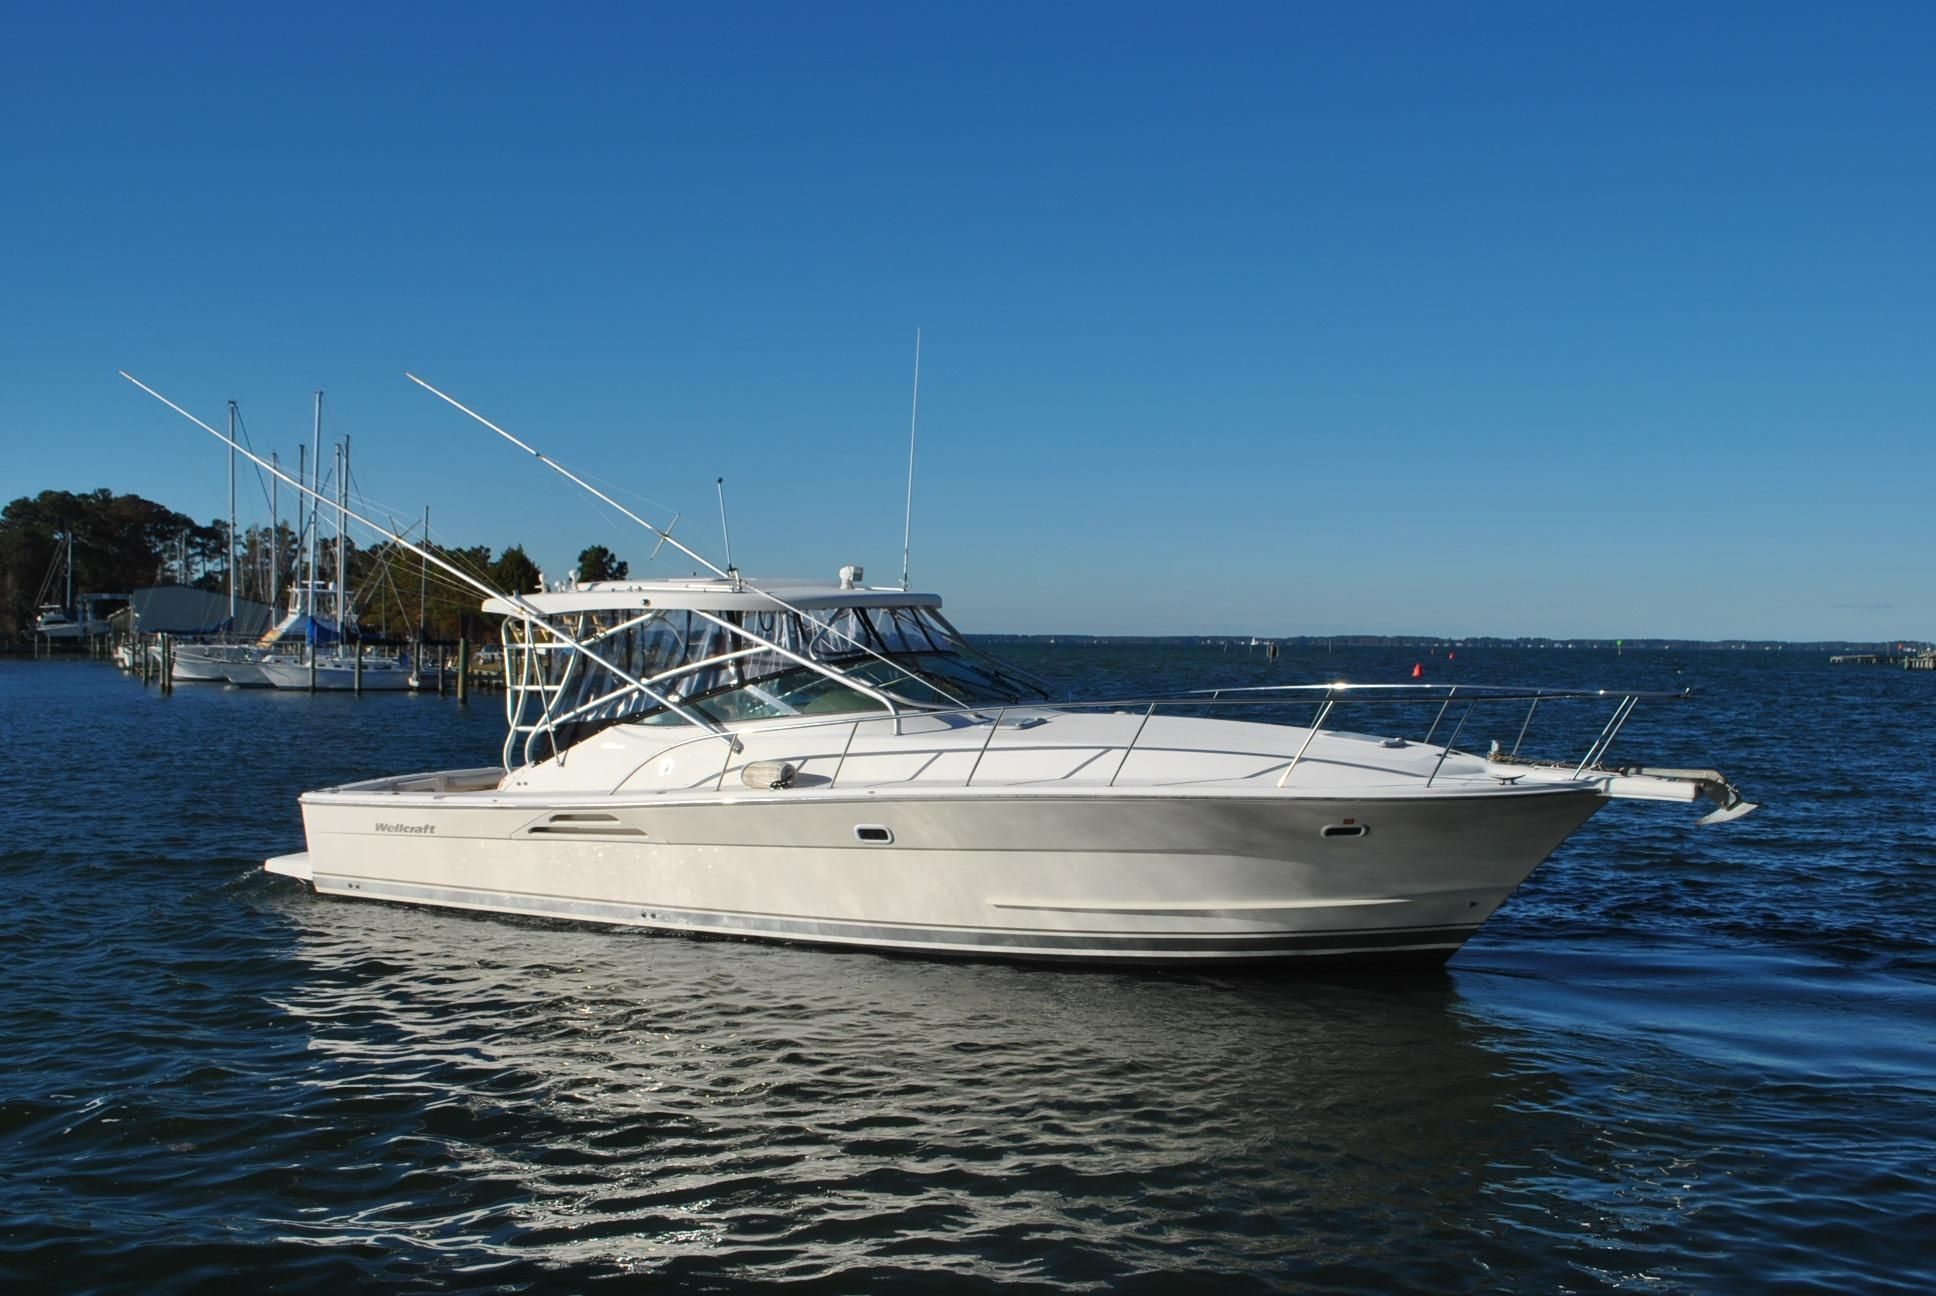 2004 Wellcraft Coastal 390 Power Boat For Sale Www